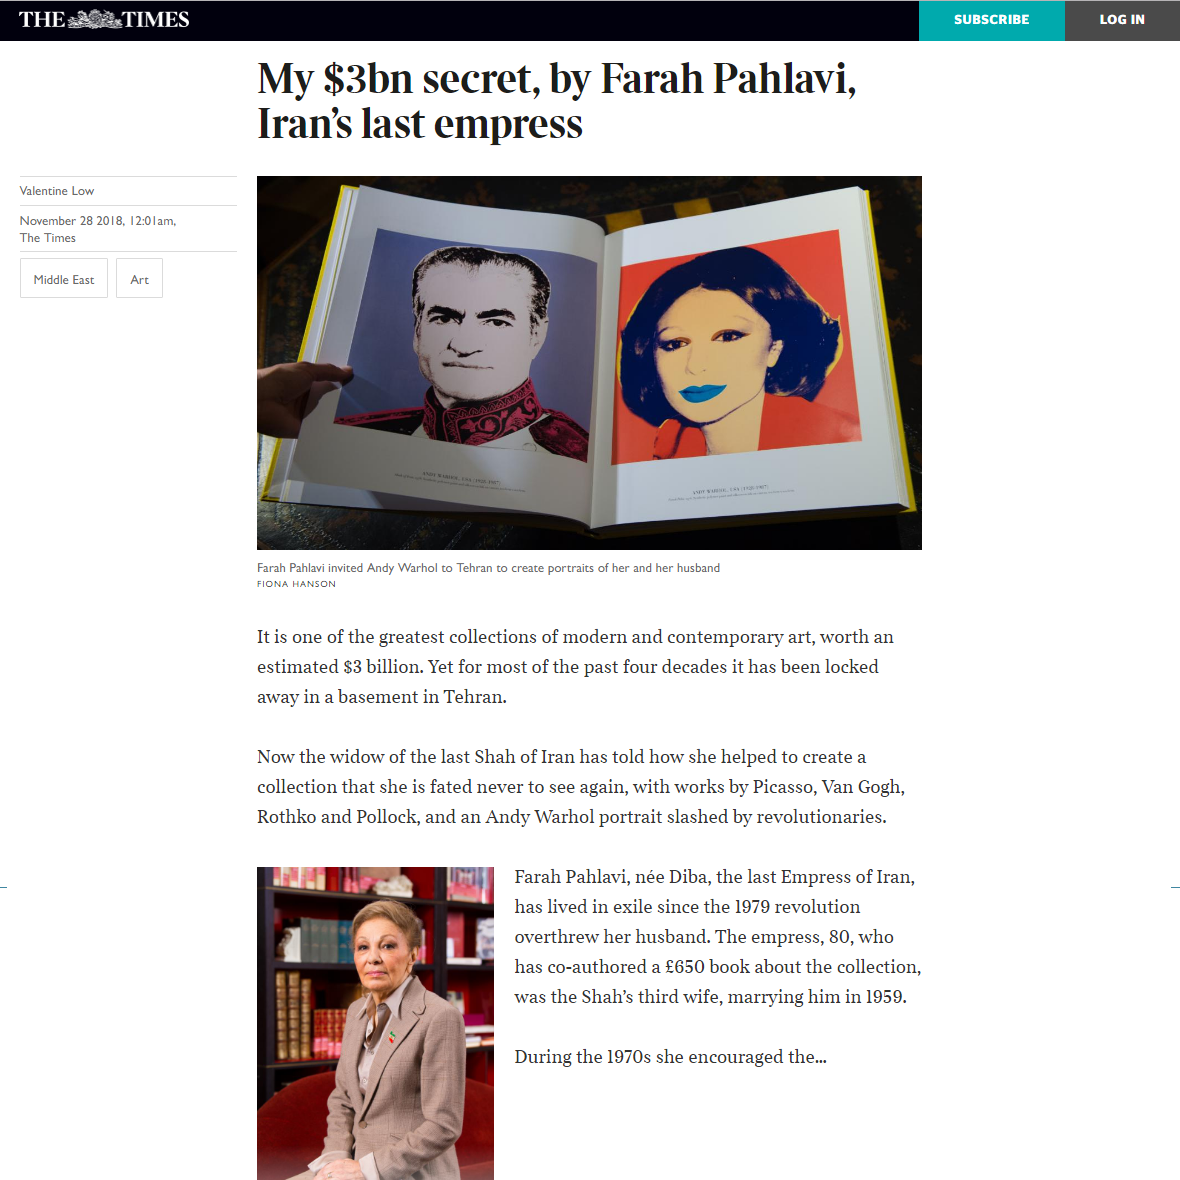 My $3bn Secret, By Farah Pahlavi, Iran's Last Empress